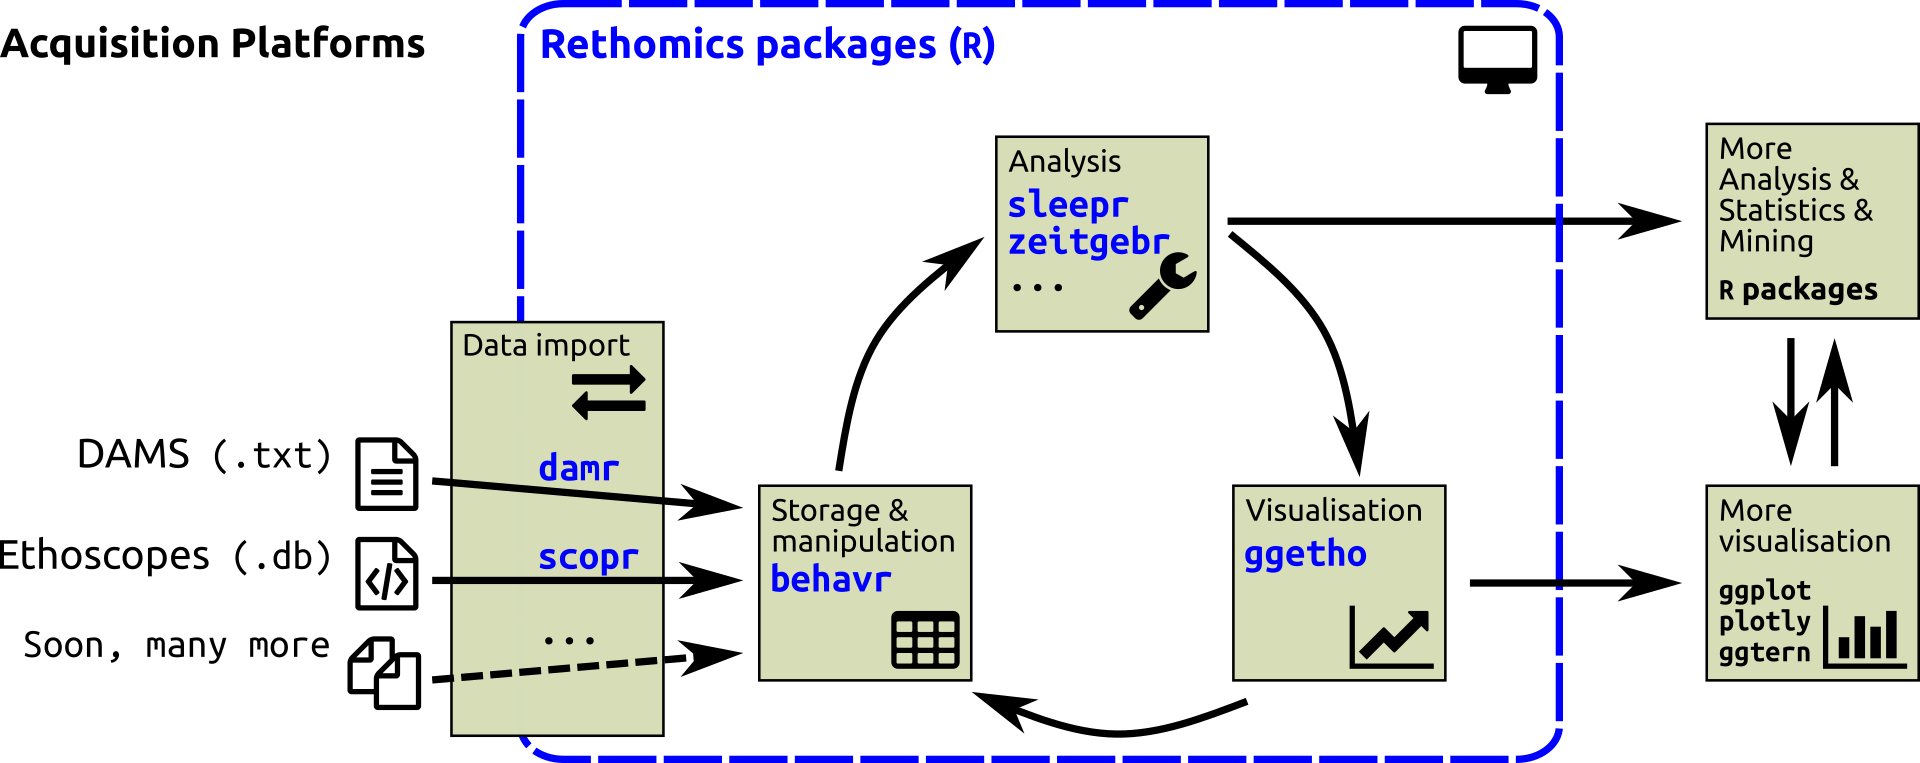 The rethomics framework unify behaviour analysis over multiple platforms